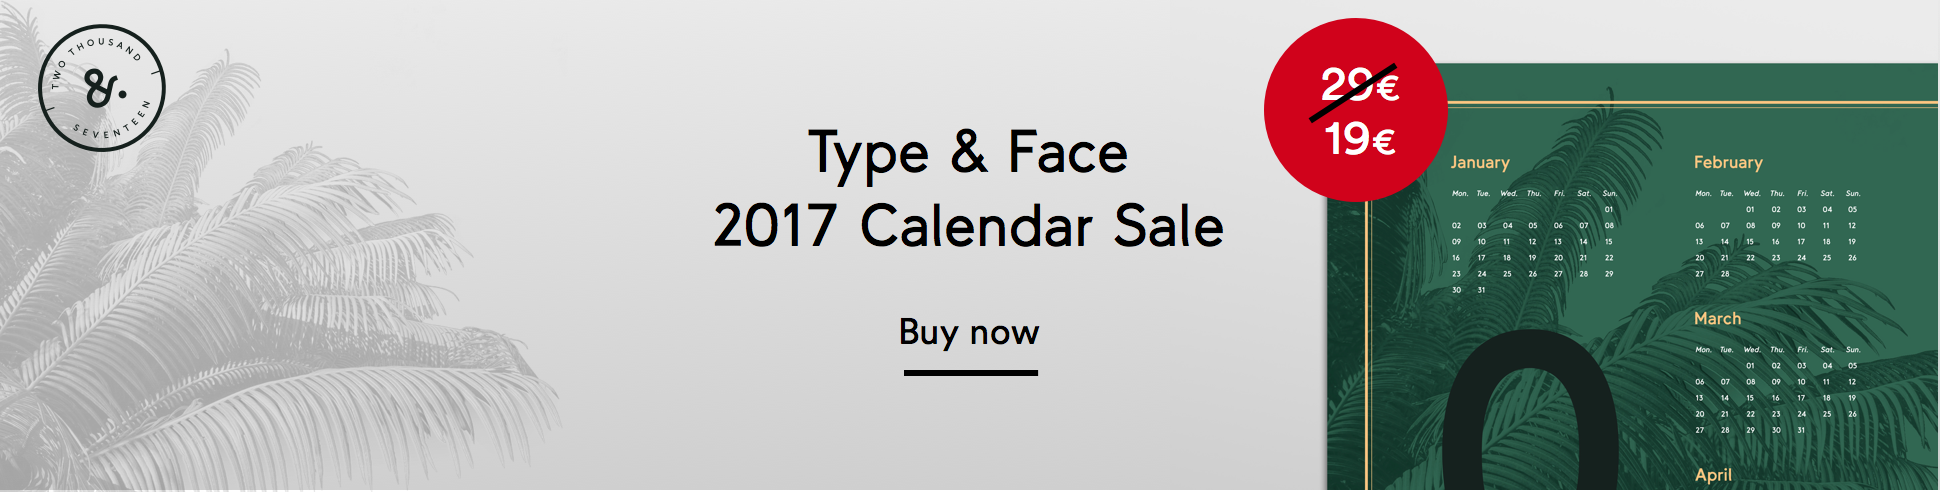 type_and_face_ad